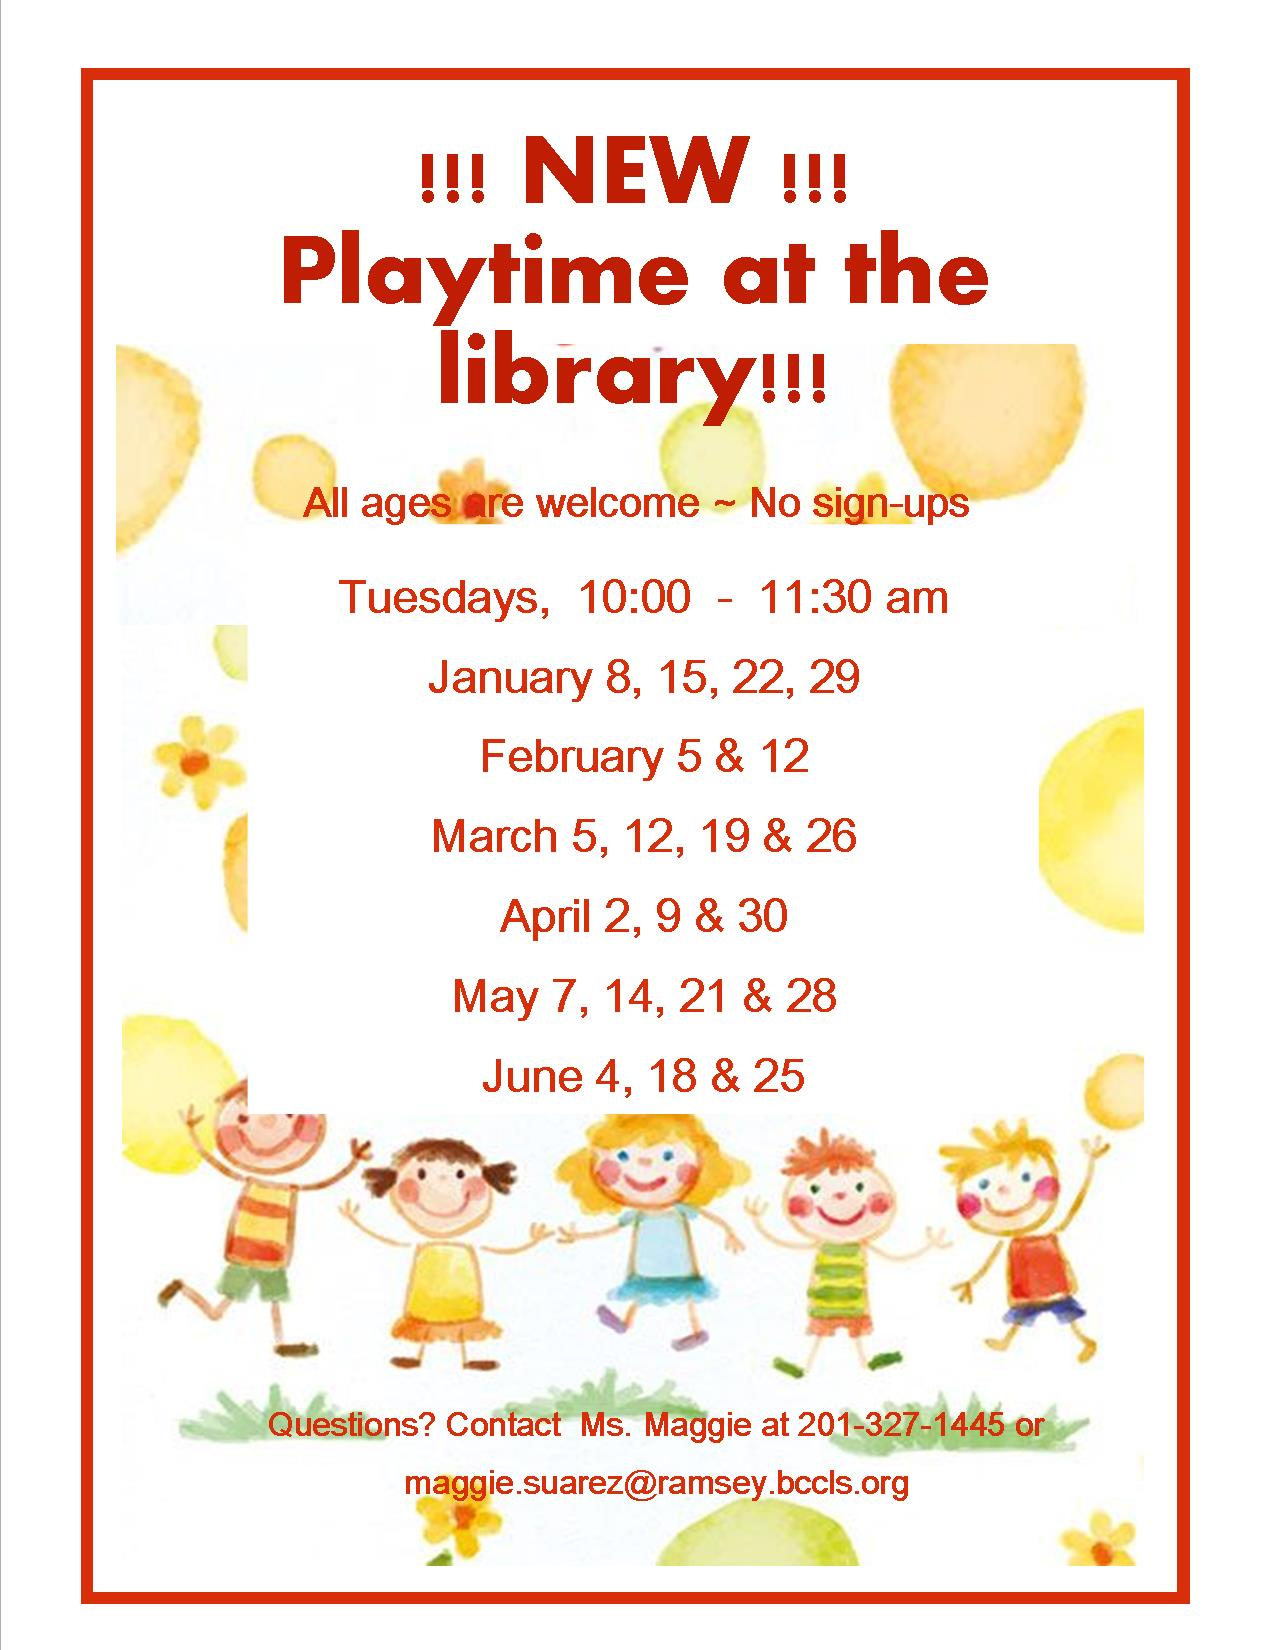 Playtime at the library